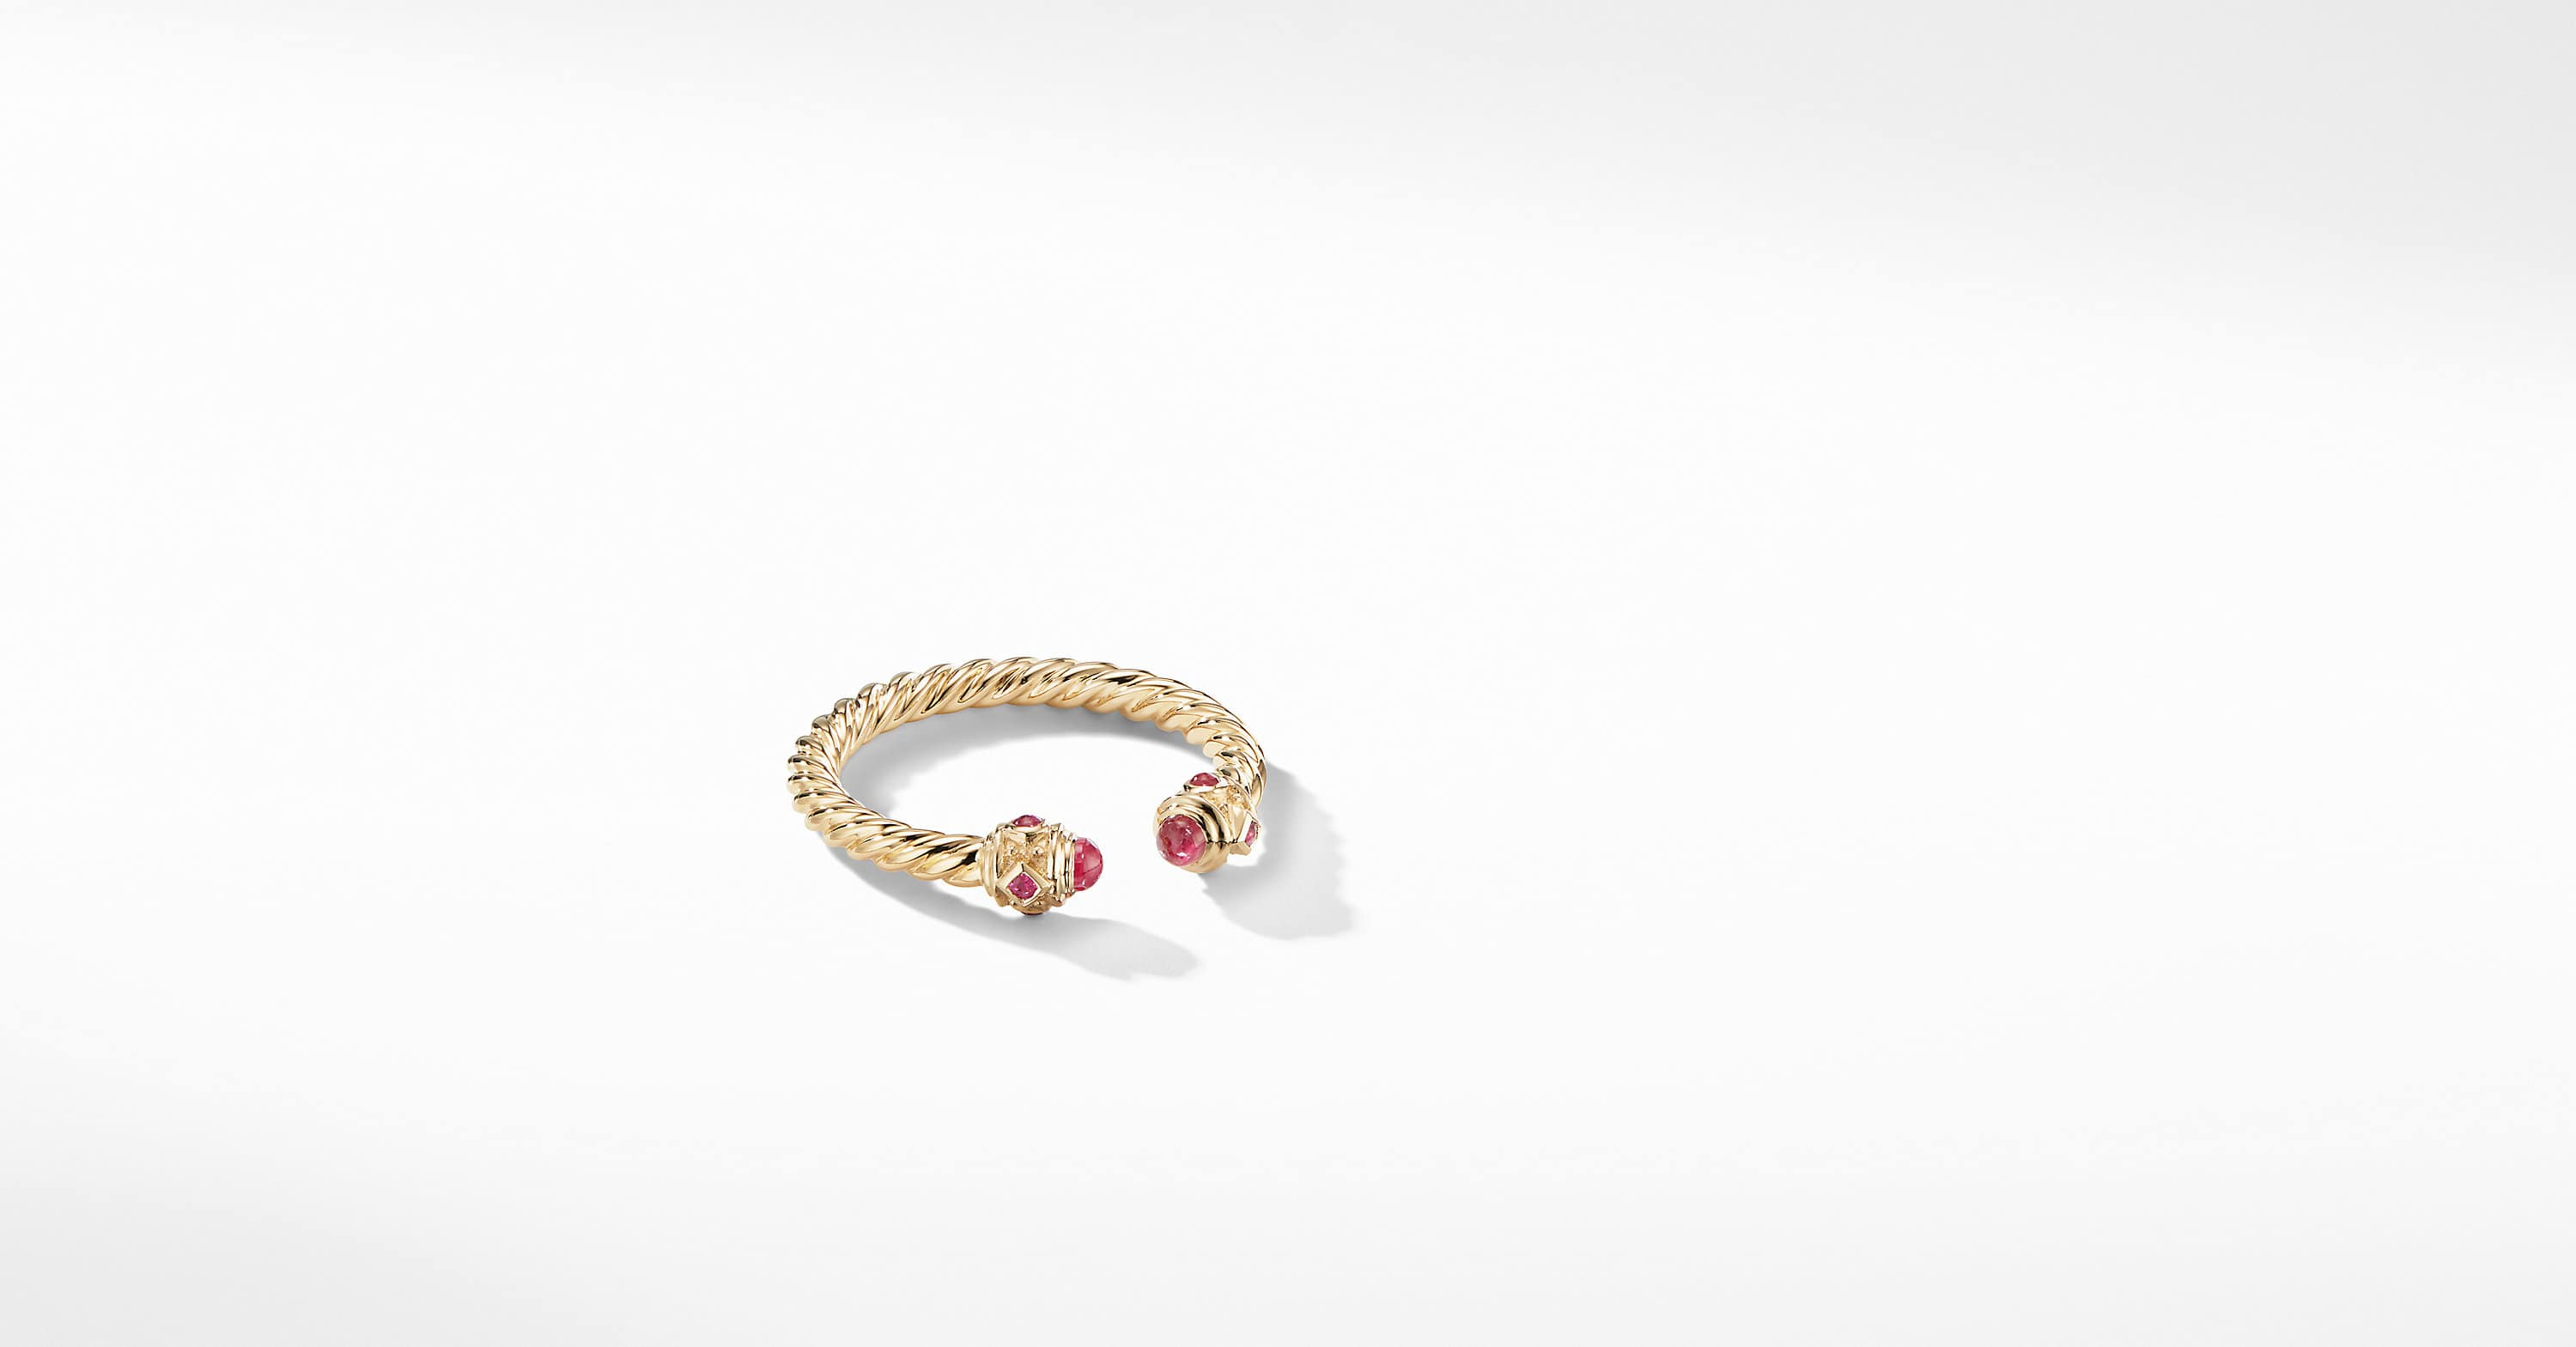 Renaissance Ring in 18K Gold